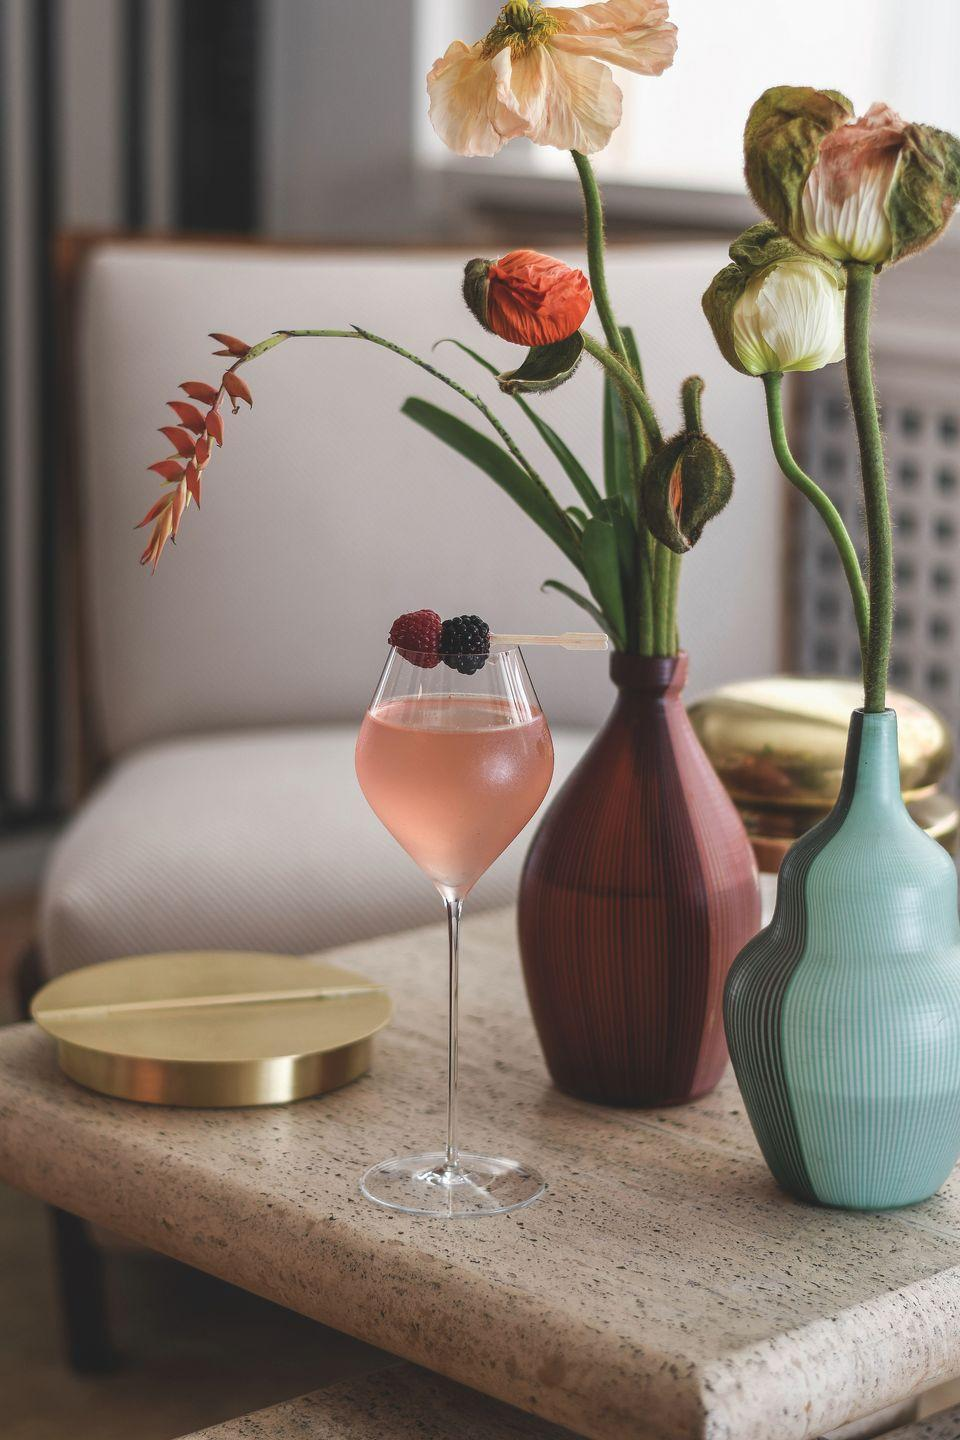 """<p>This delicate and feminine cocktail was created by <a href=""""https://www.belmond.com/hotels/europe/italy/portofino/belmond-splendido-mare/"""" rel=""""nofollow noopener"""" target=""""_blank"""" data-ylk=""""slk:Splendido Mare, a Belmond Hotel"""" class=""""link rapid-noclick-resp"""">Splendido Mare, a Belmond Hotel</a> to honor Ava Gardner, who notoriously adored Champagne and all-things pink. Gardner stayed at the hotel while filming the 1954 film, <em>Barefoot Contessa</em>, with Humphrey Bogart.</p><p><strong>Ingredients: </strong></p><p>25 mL London dry Gin</p><p>20 mL raspberry liquor</p><p> 15 mL Orange Curacao</p><p> 15 mL fresh lemon juice</p><p>5 mL simple syrup.</p><p>Dry sparkling wine</p><p>Directions:</p><p>Add first five ingredients into a cocktail shaker with ice, shake well, and top with Champagne Brut or a dry Prosecco.<br></p>"""